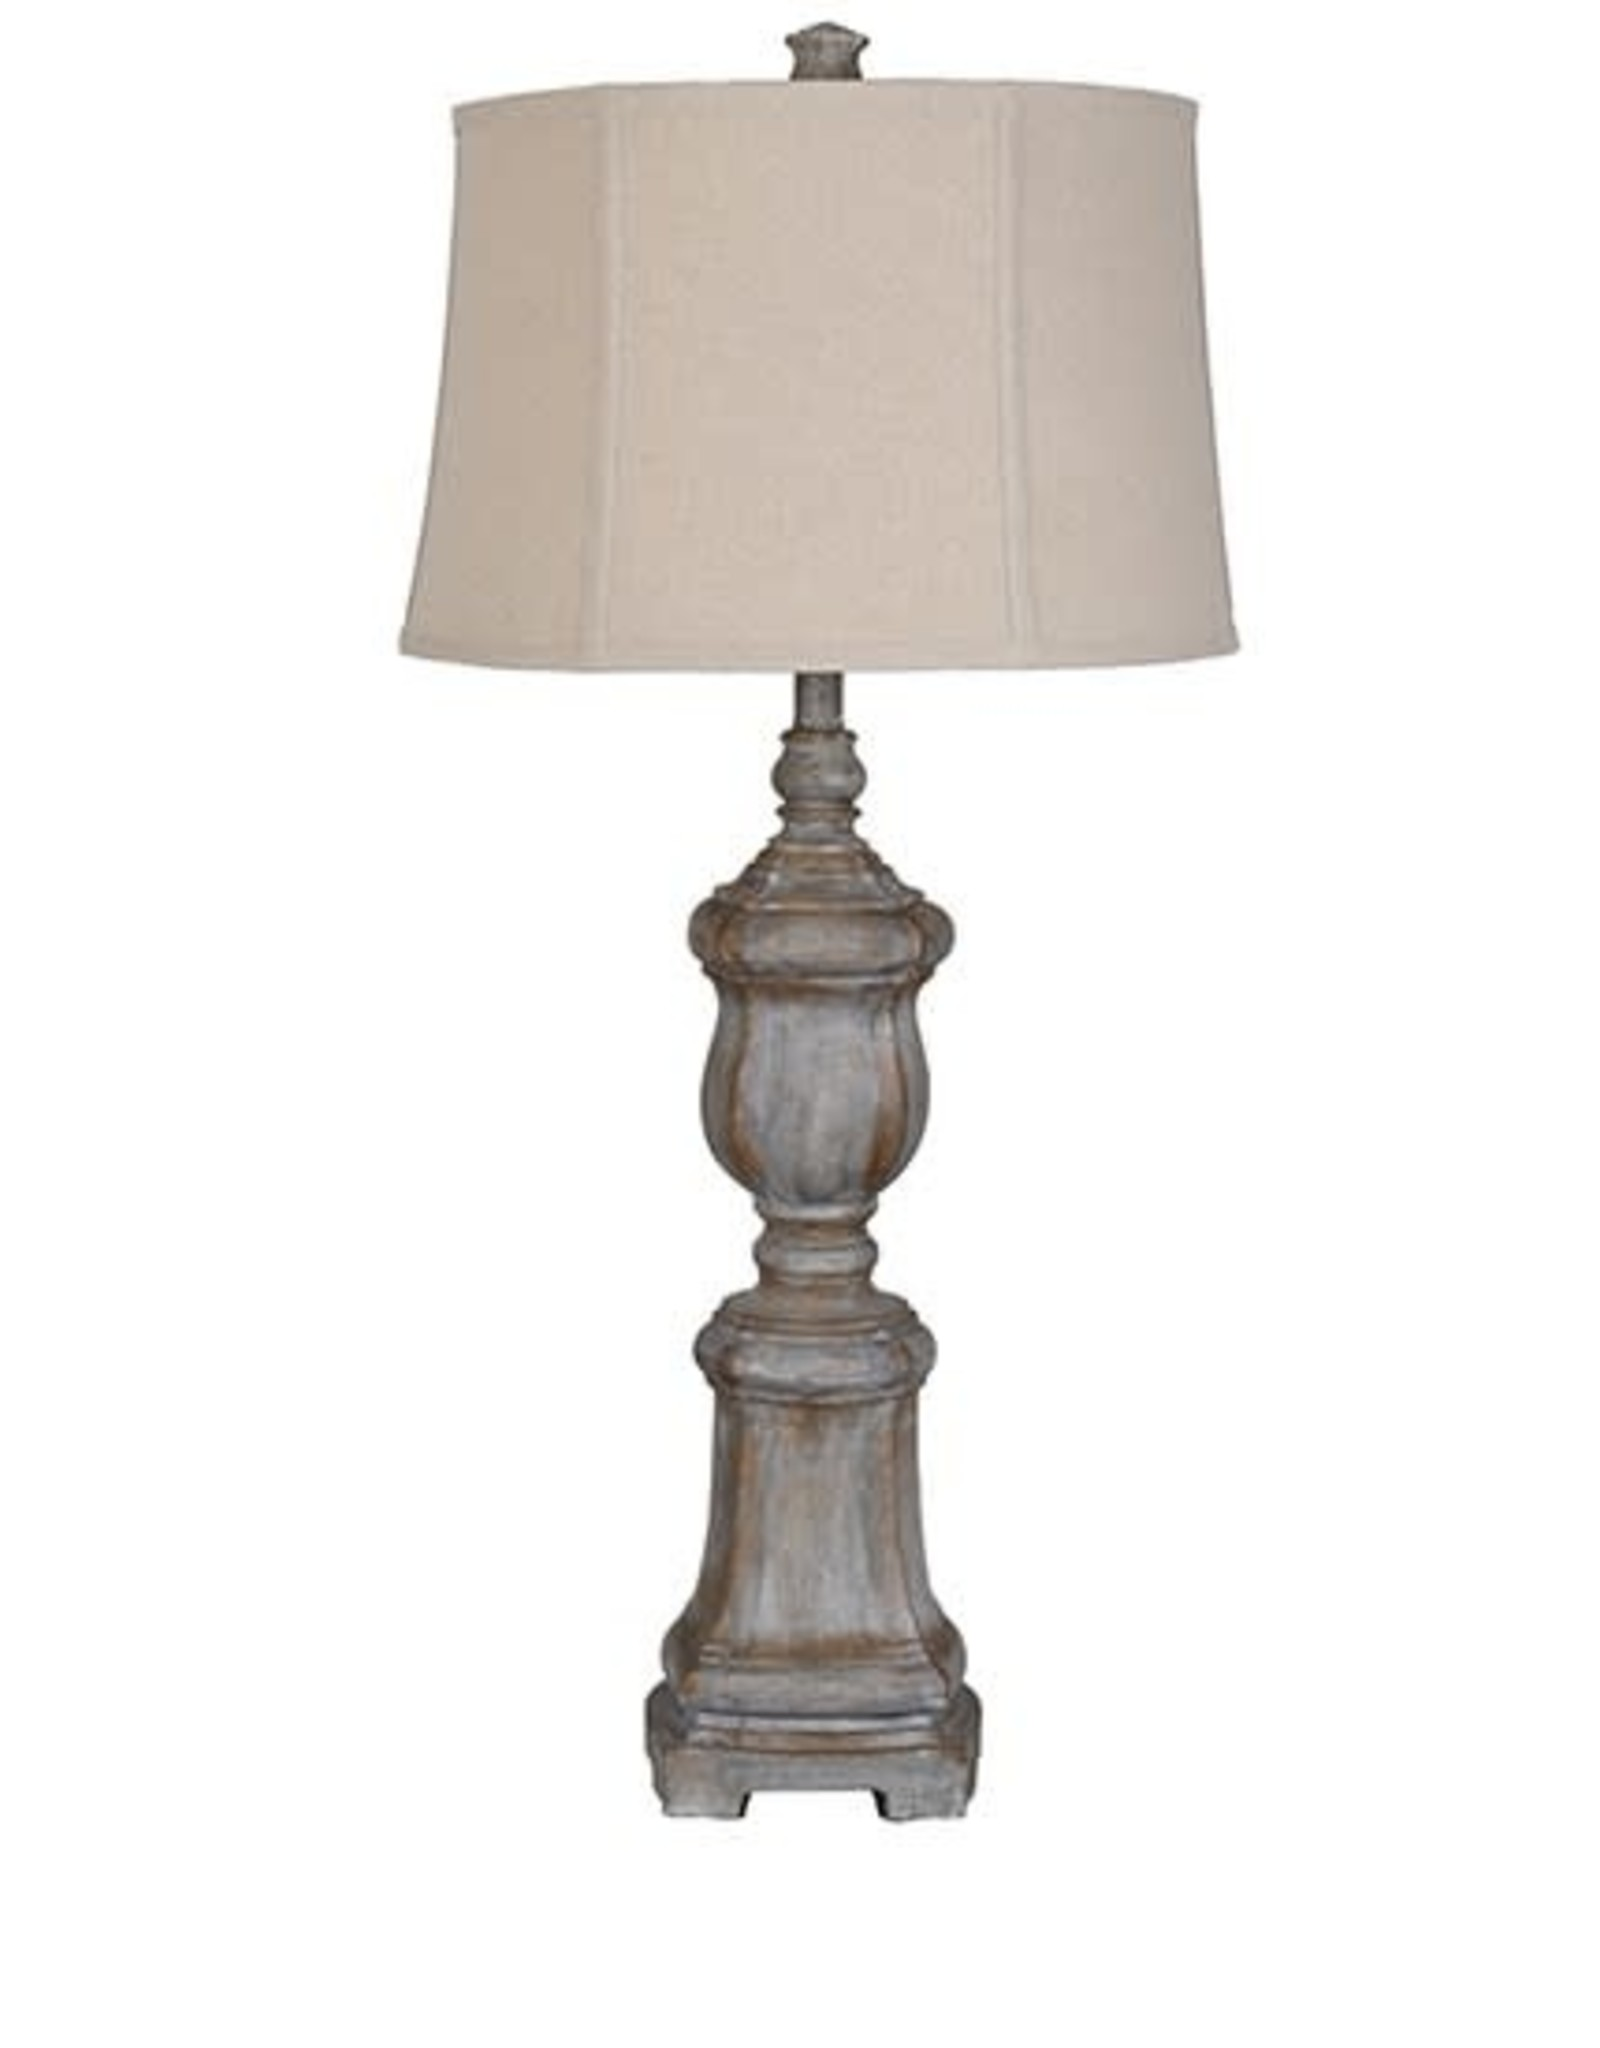 "Crestview Ridgeline Table Lamp 35.5"" tall"